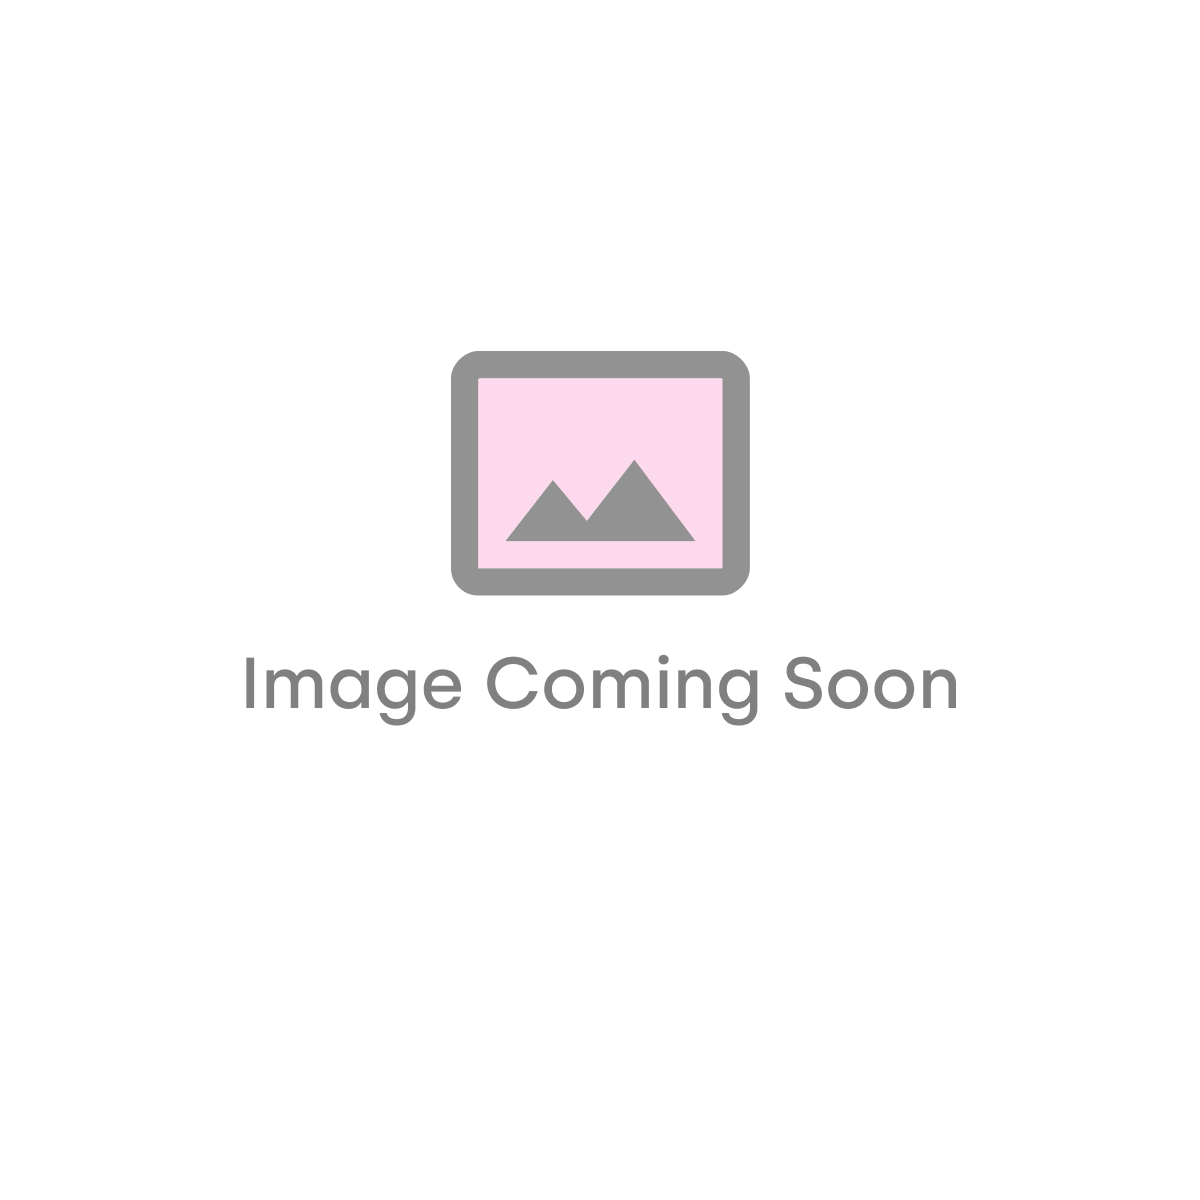 Aquadart 10 800mm Wetroom Panel - Smoked Glass (18679)